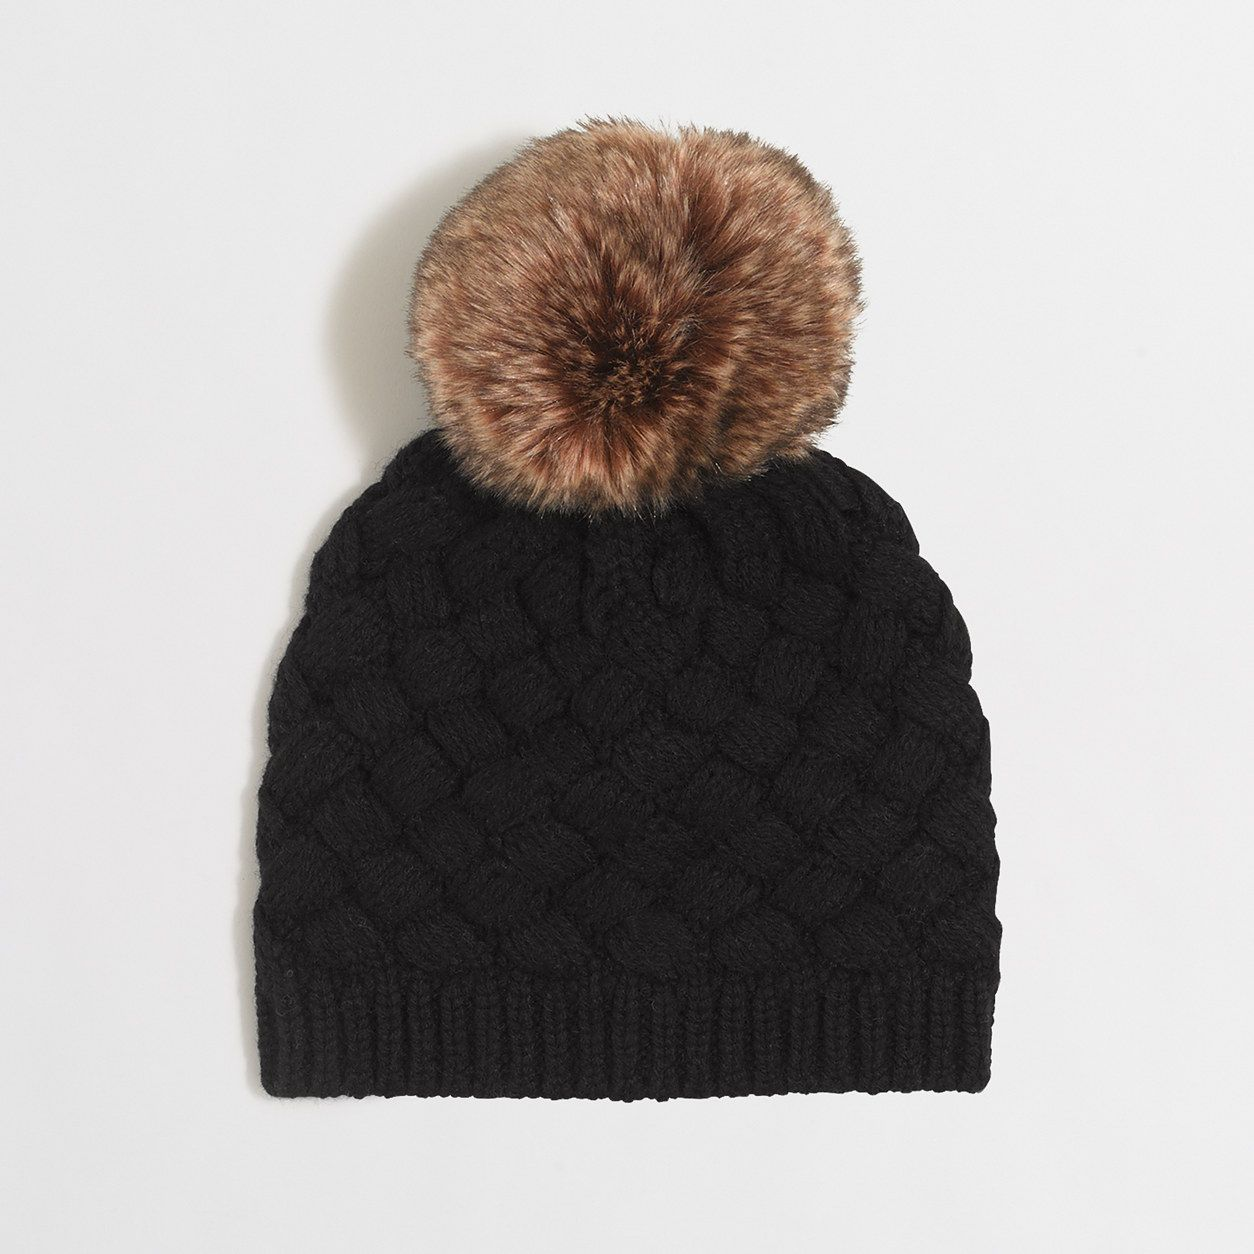 0b13524c2517 Factory knit hat with faux-fur pom-pom   Gifts for Women